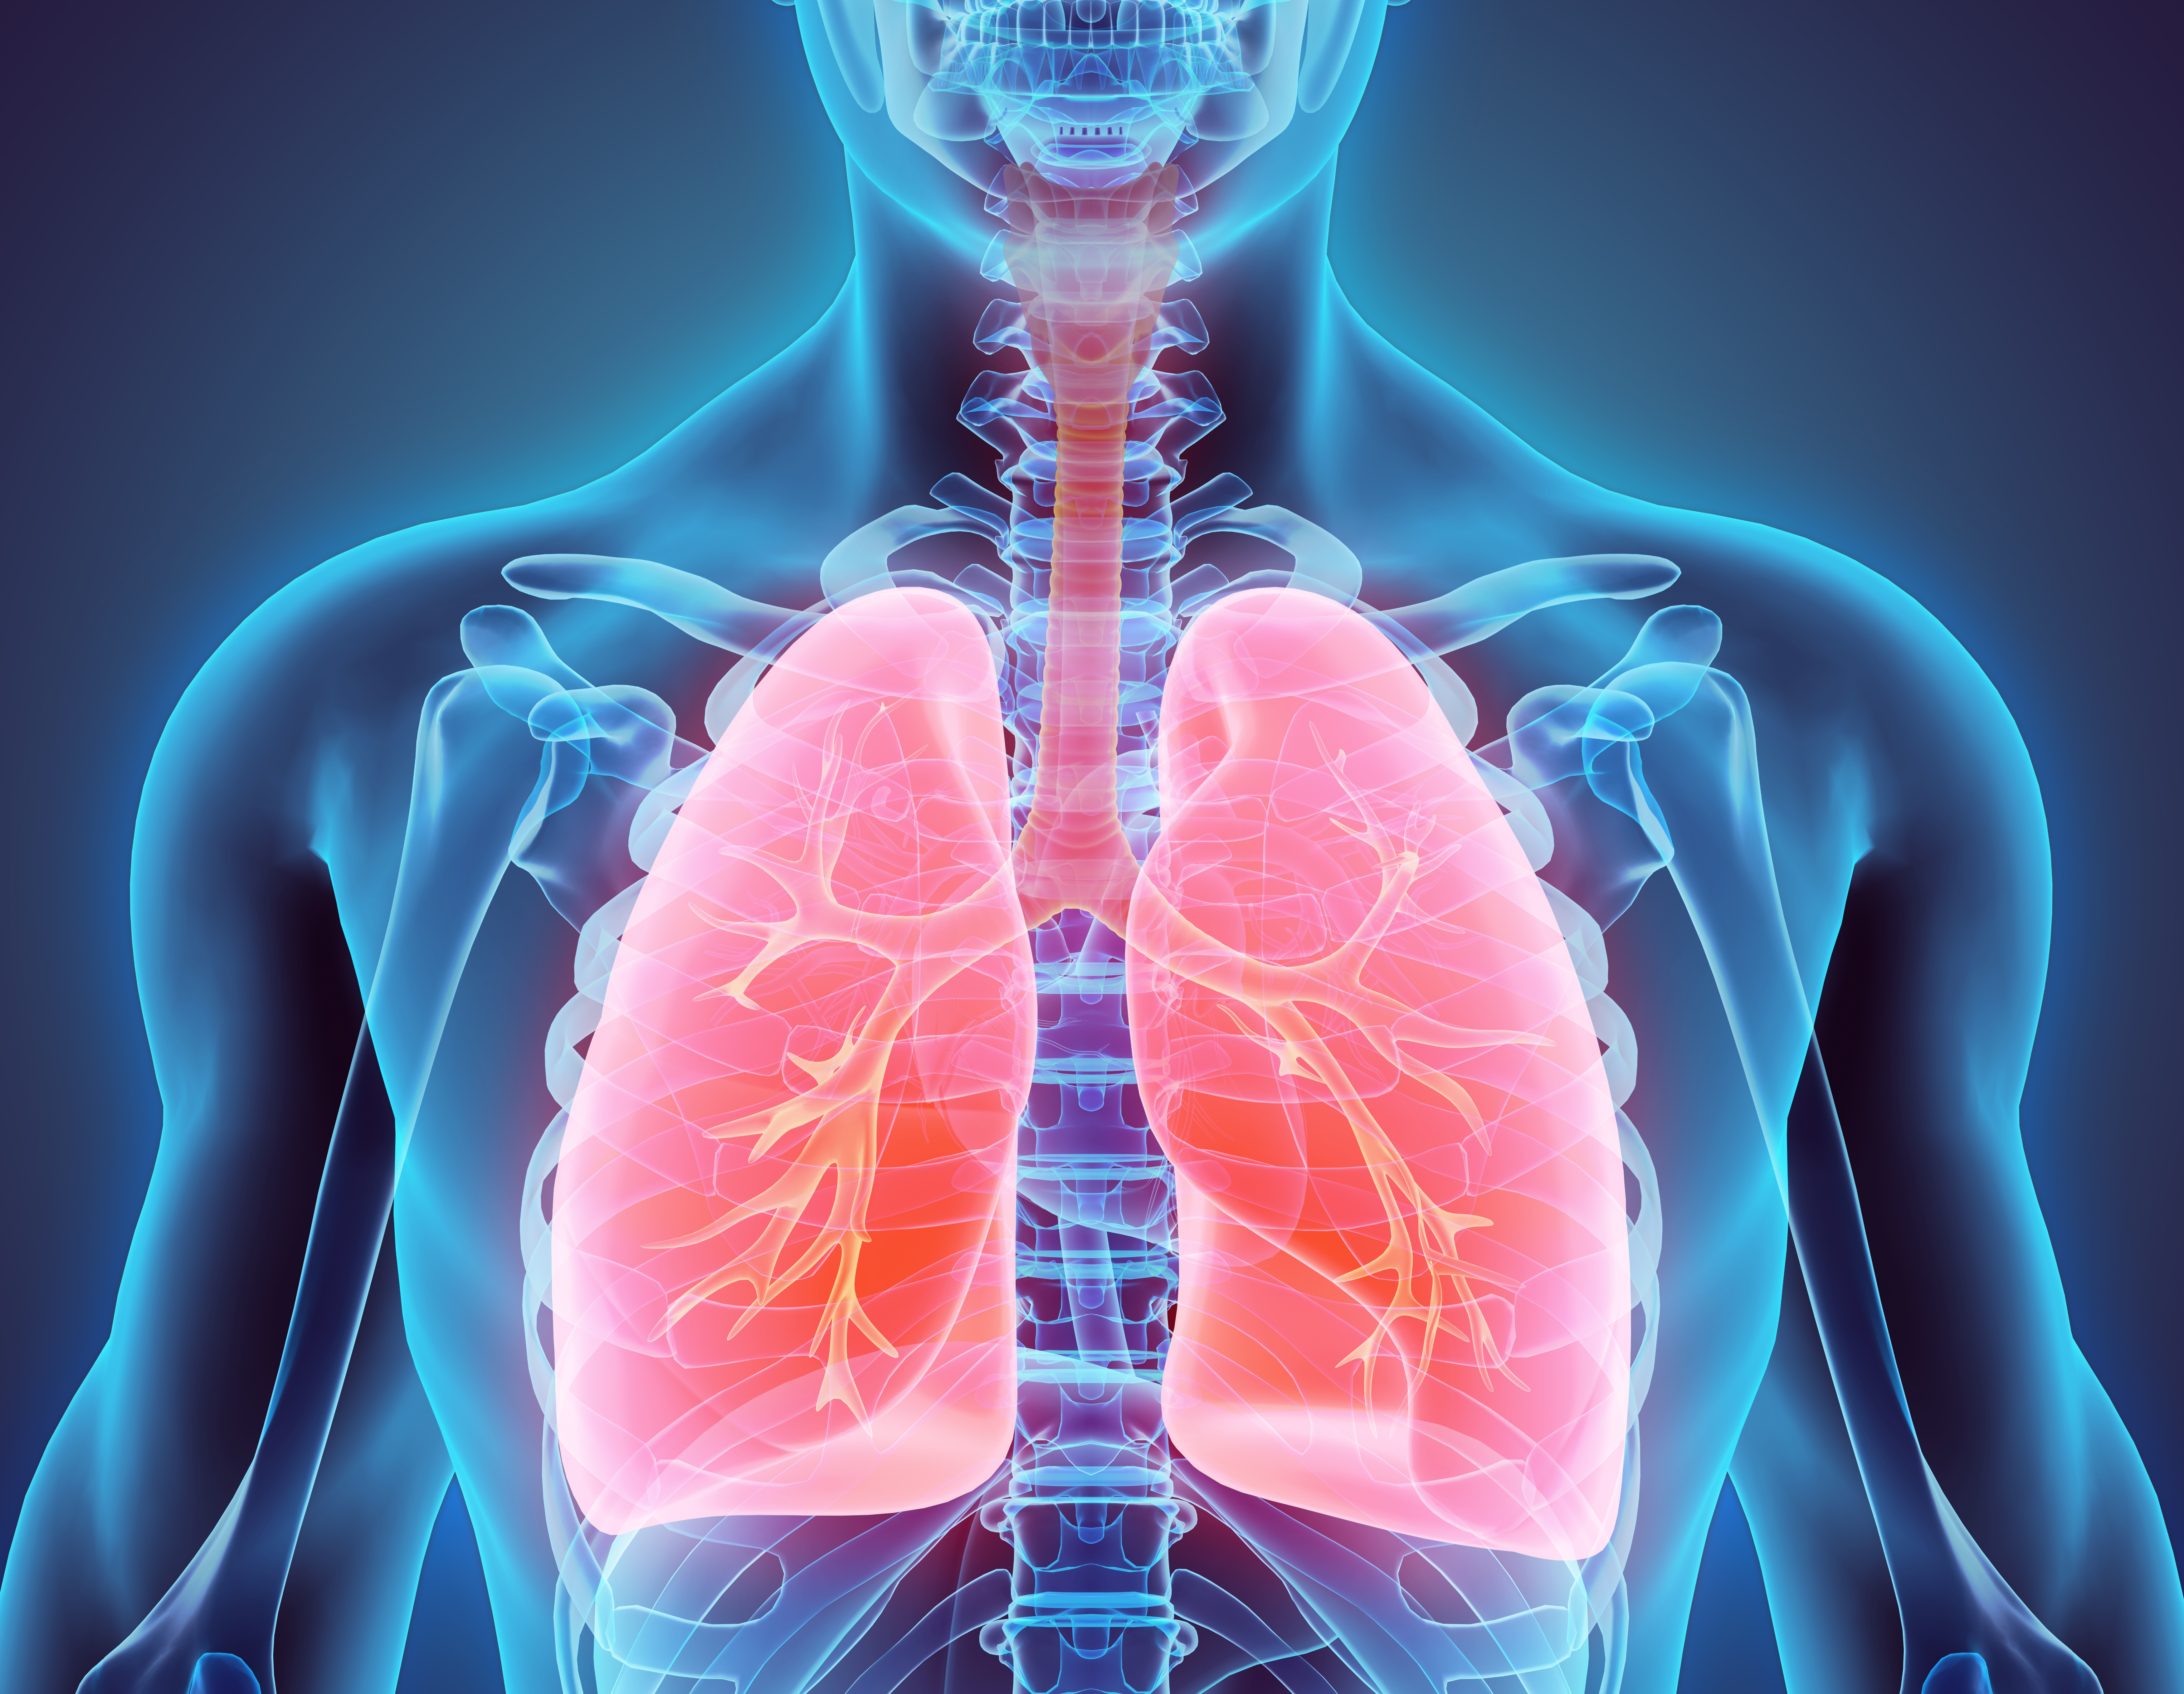 Lung Cancer: Types, Diagnosis, Treatment, Staging, and Prognosis